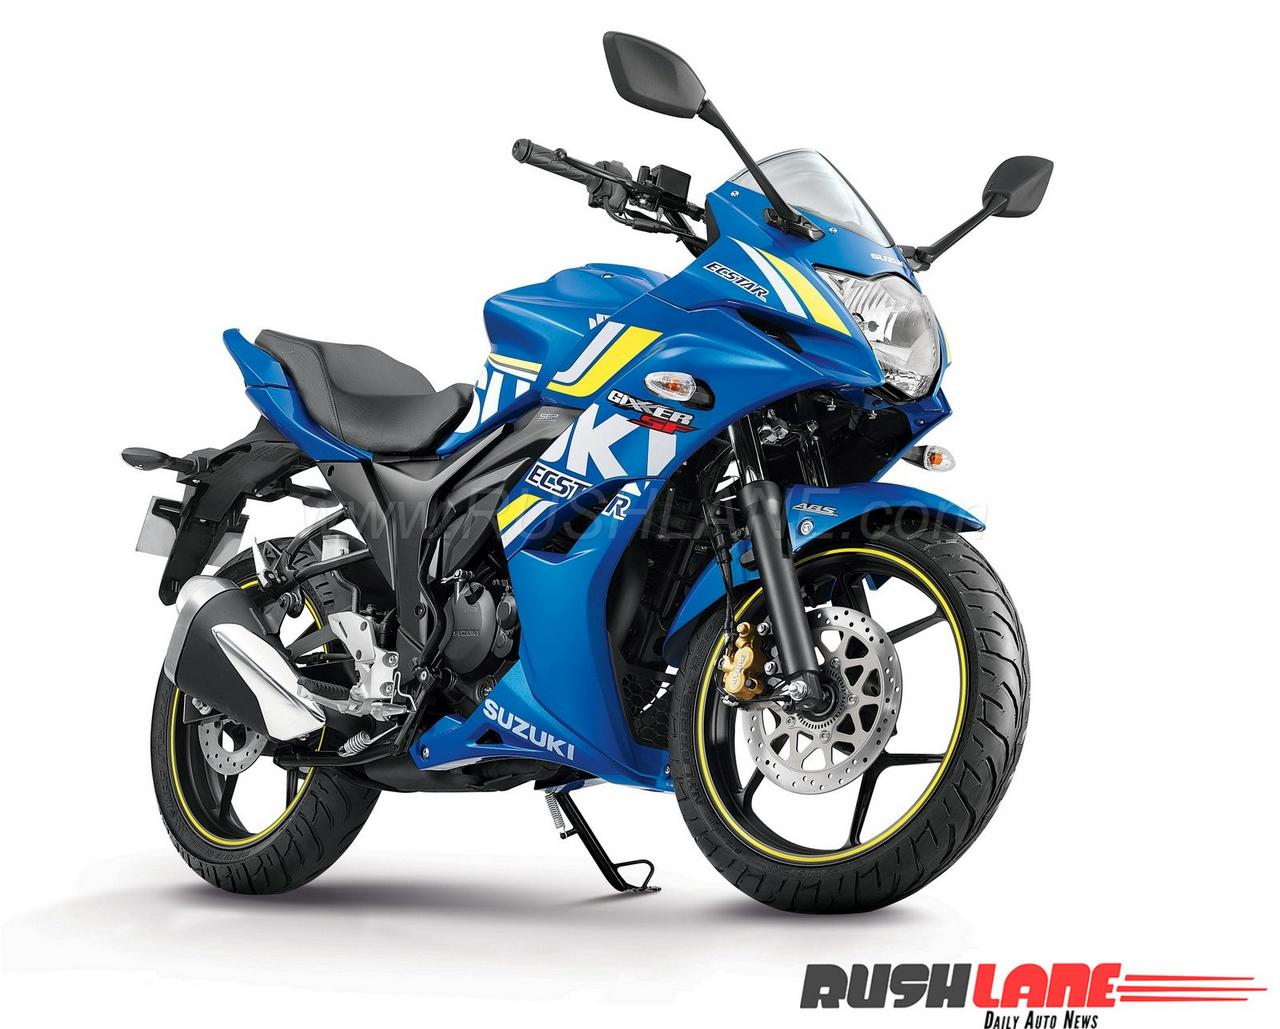 Top 10 bikes in India which are priced less than Rs 1 lakh